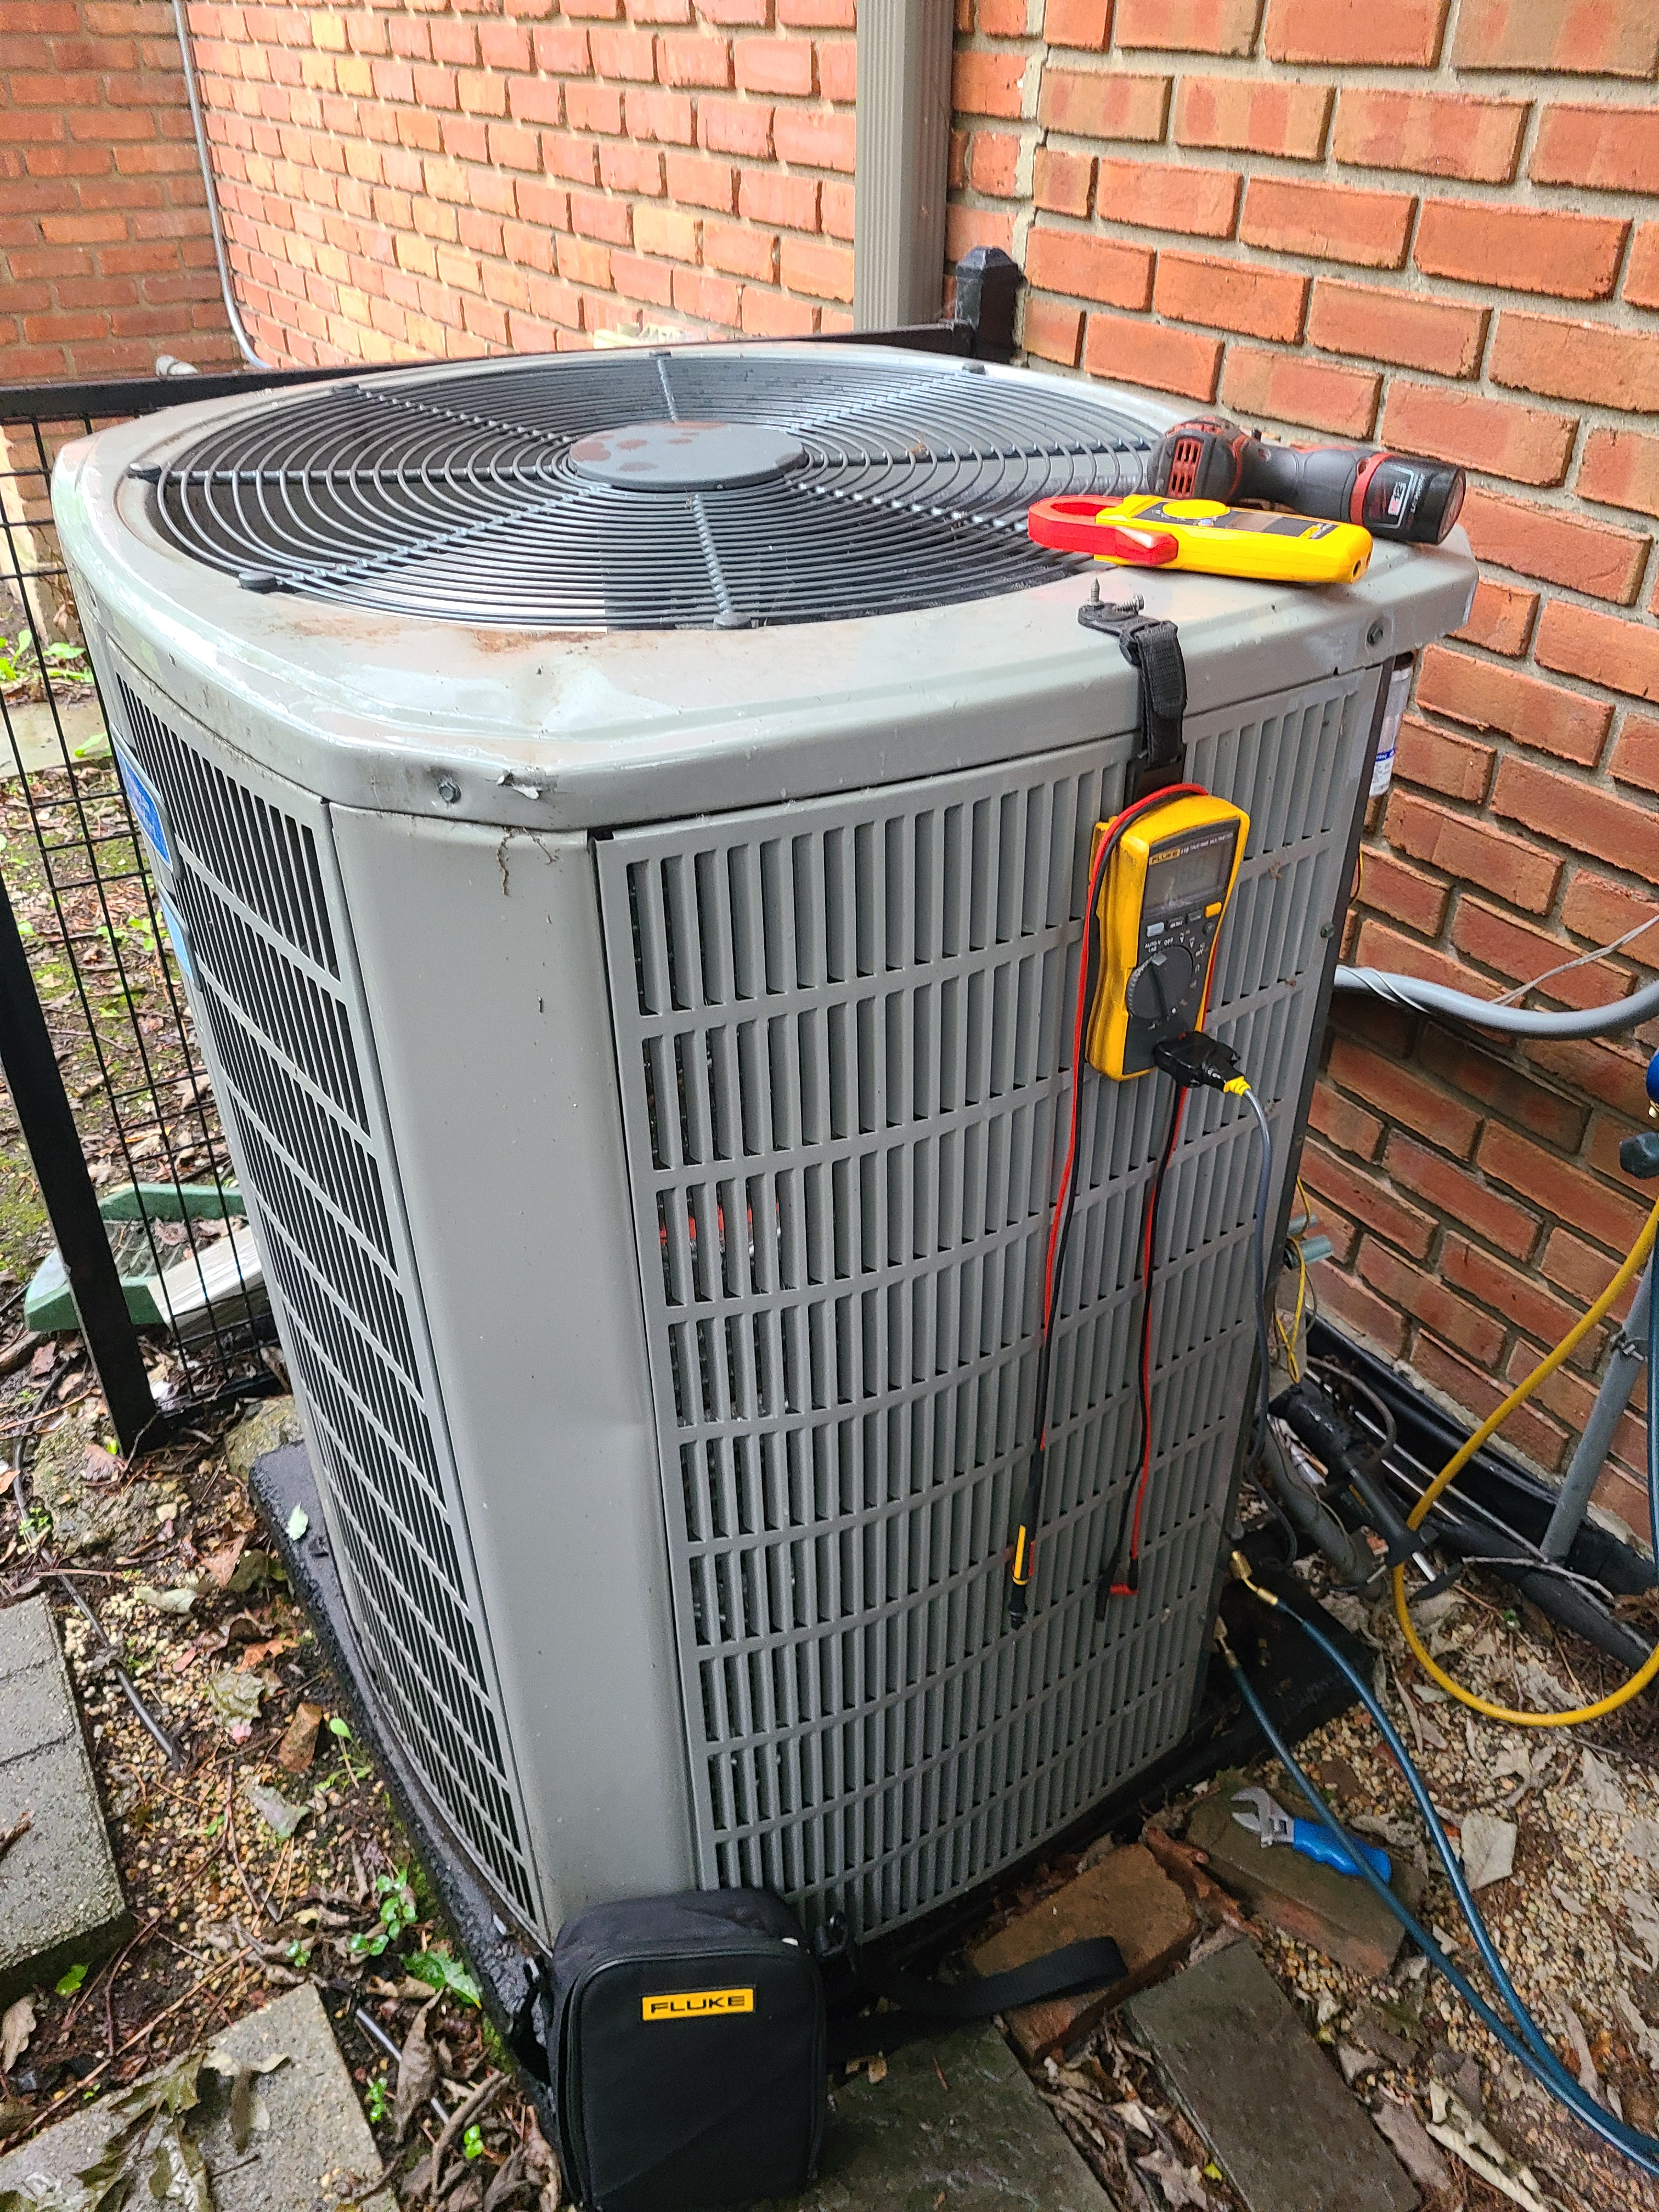 American Standard ac system summer maintenance.  System cleaned and checked and ready for summer.